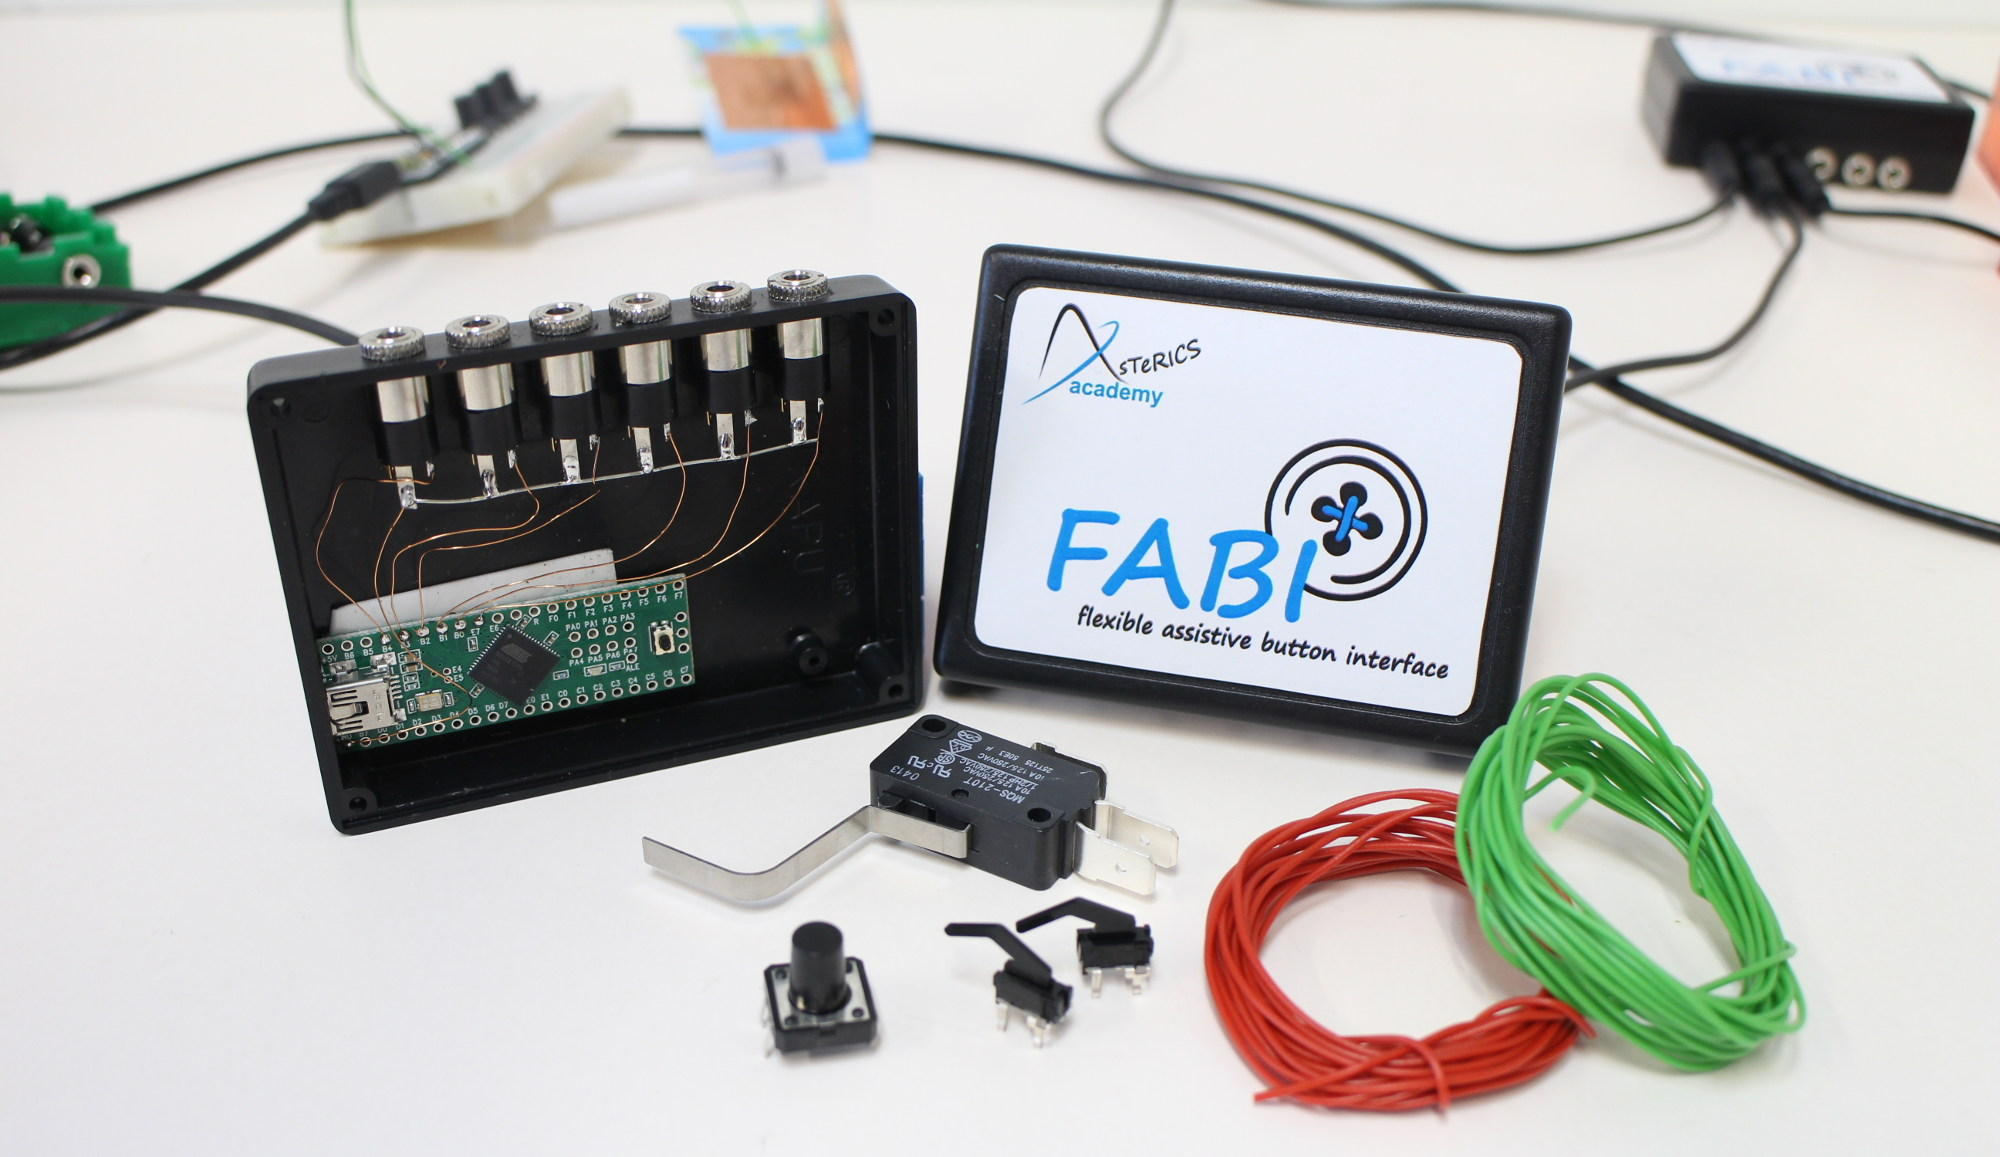 An opened FABI box, where you can see the Teensy microcontroller board and the 6 jackplugs